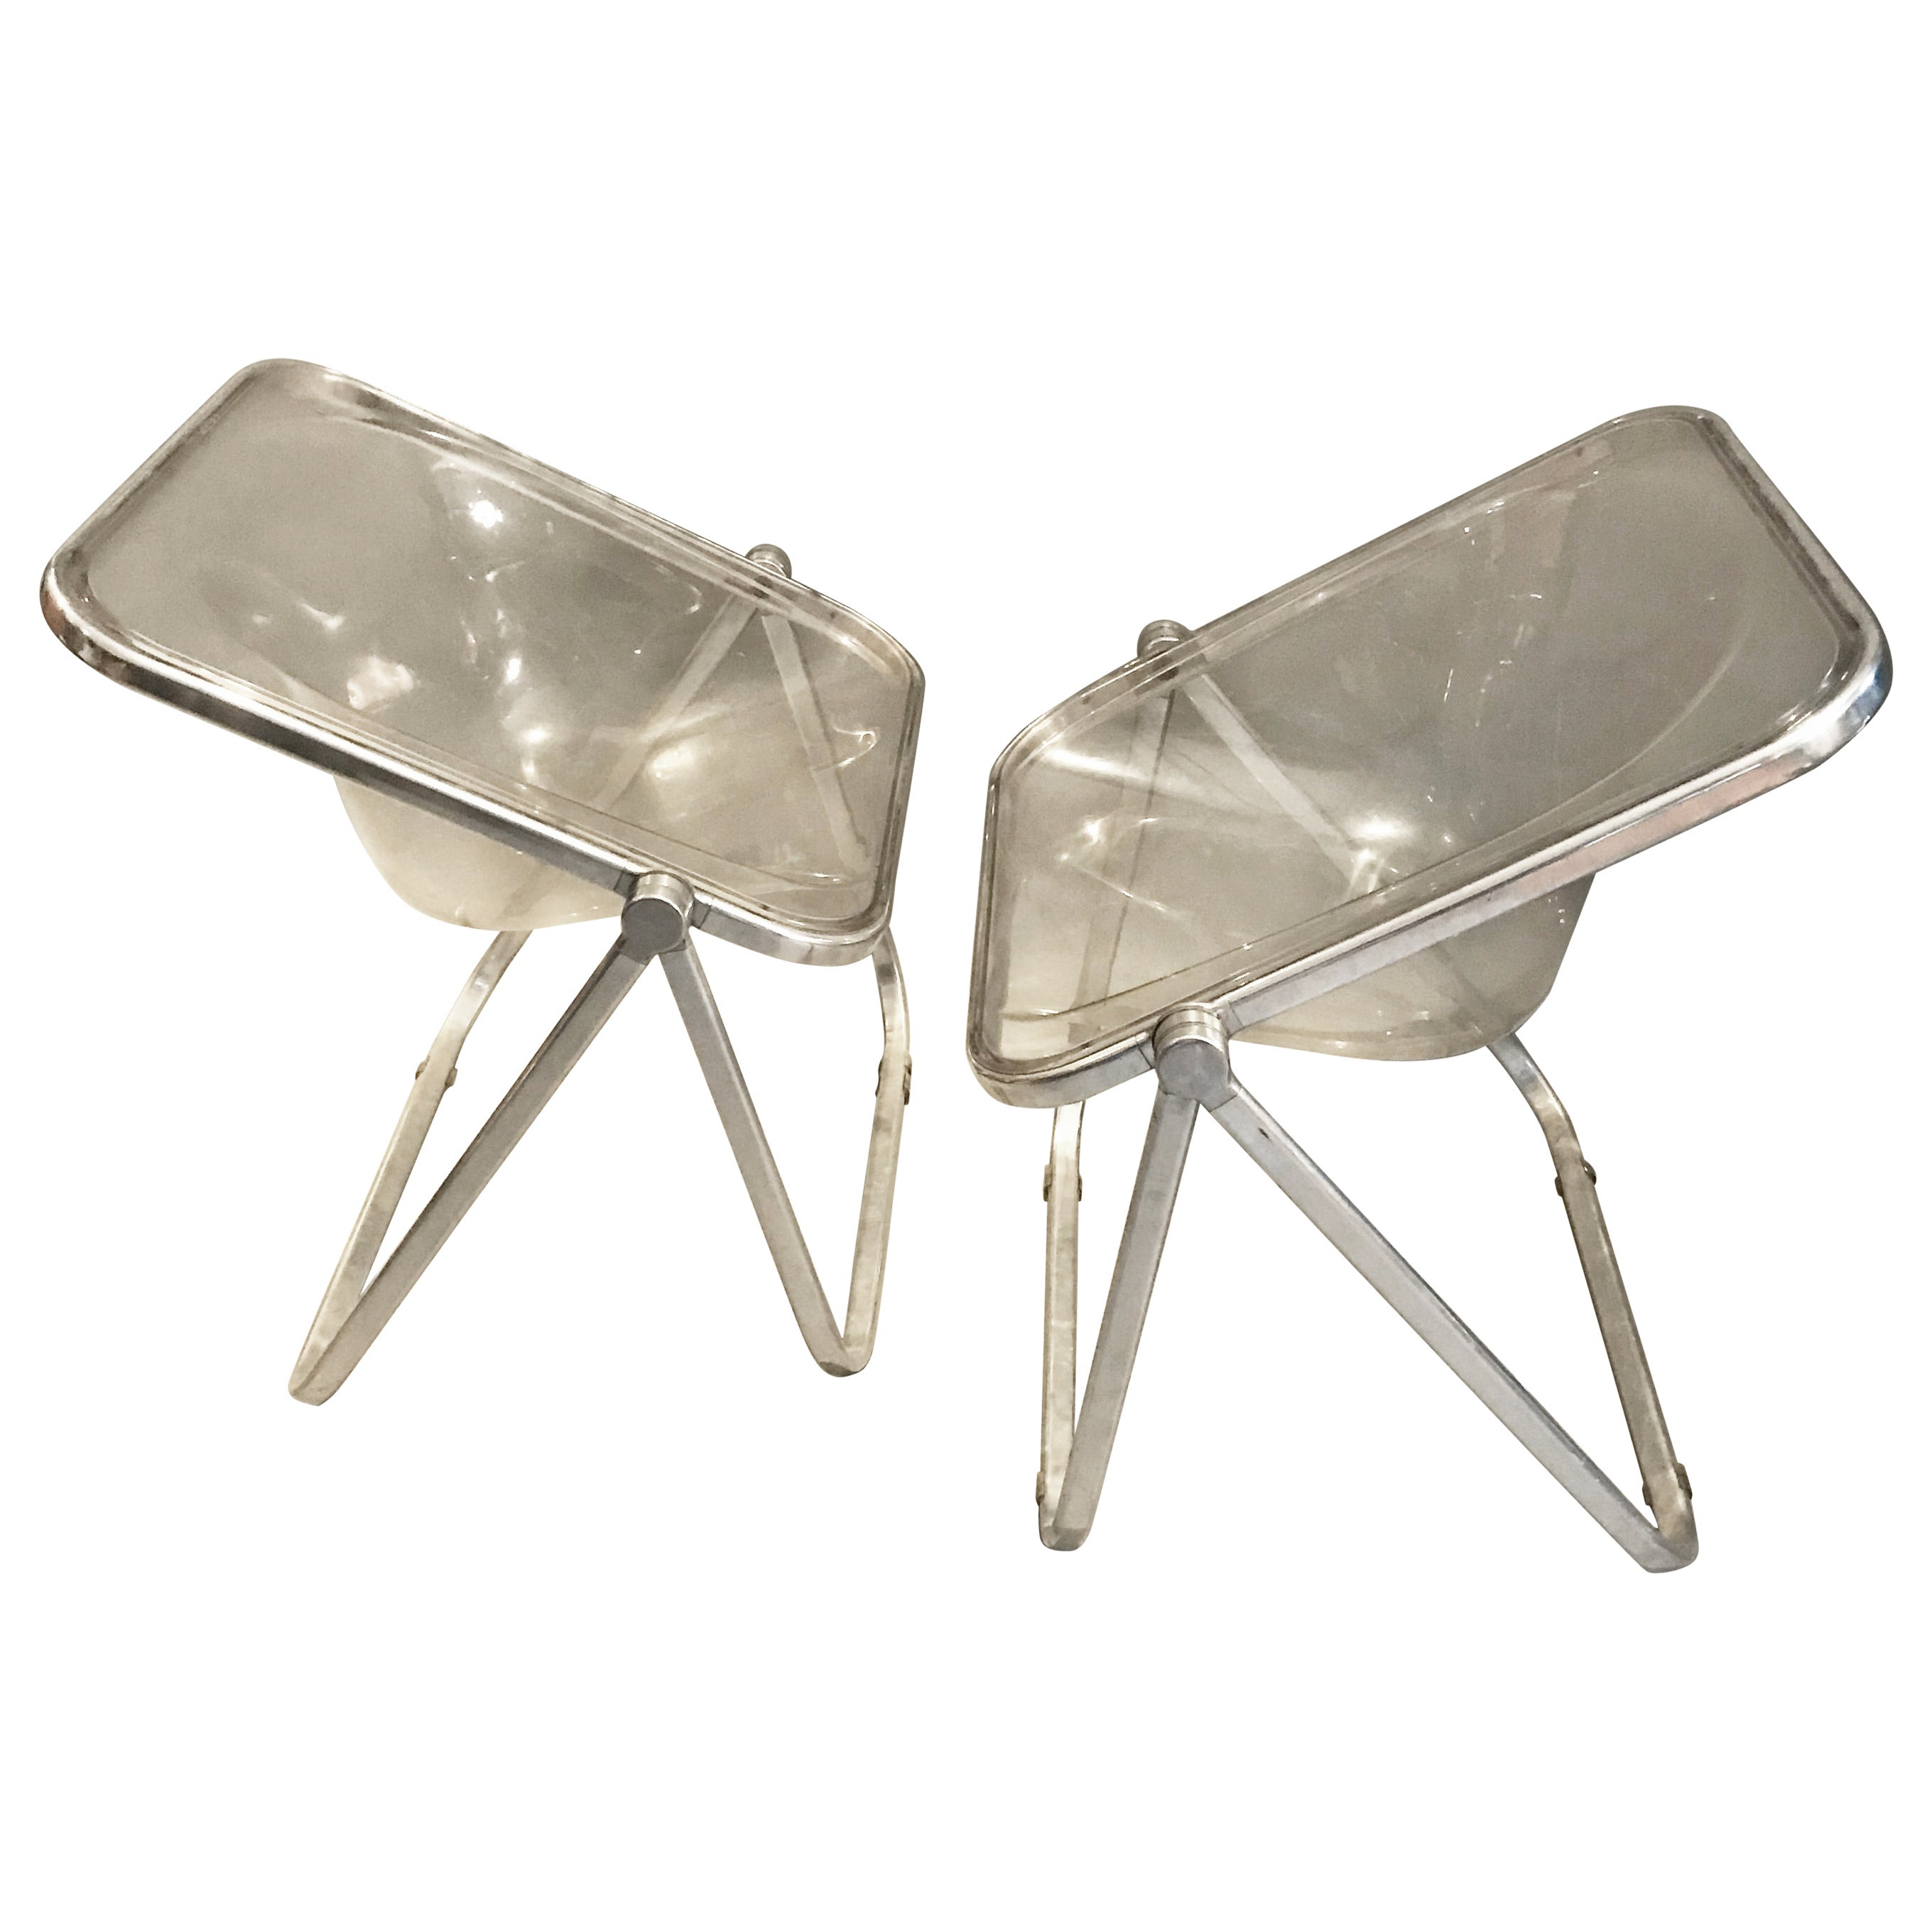 Plona Chair by Giancarlo Piretti for Castelli, circa 1970, Italy